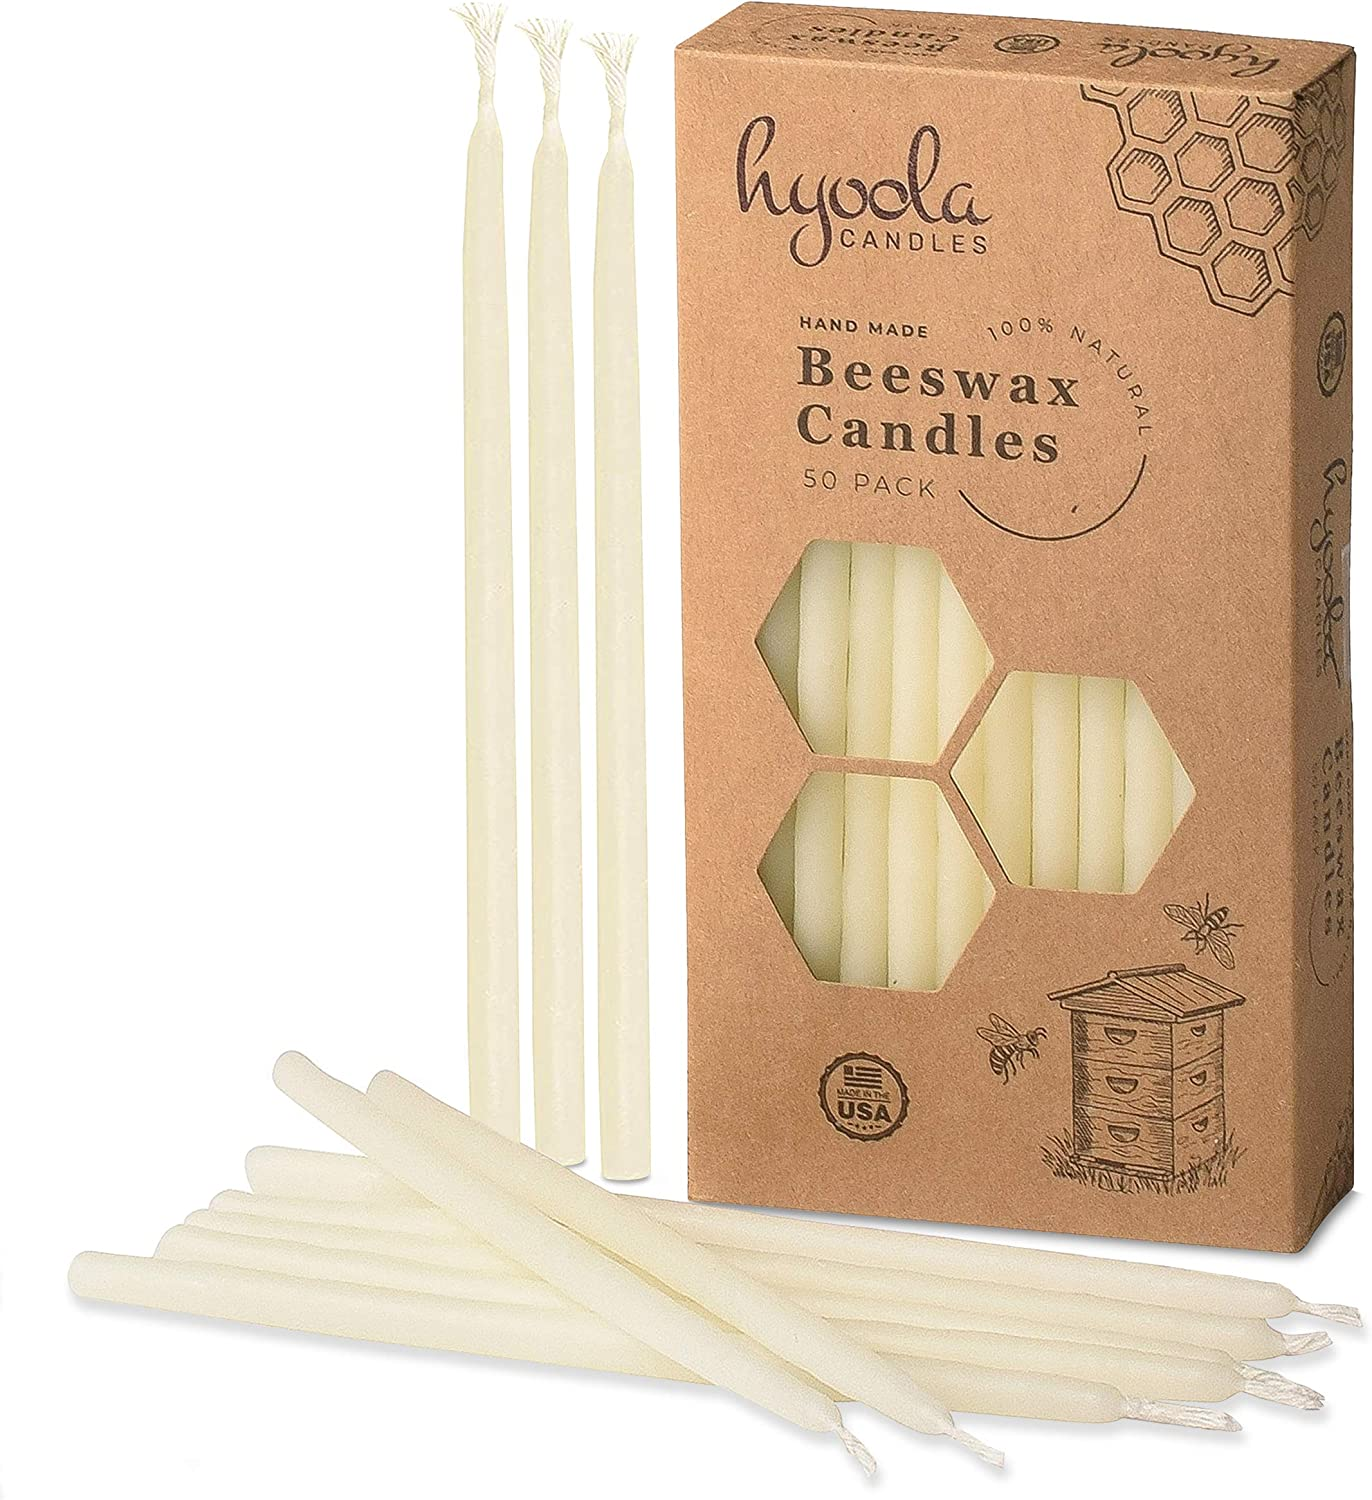 Hyoola Beeswax Birthday Candles - 50 Pack - Natural Dripless Decorative Candles with Long Lasting Burn - Elegant Taper Design, Soothing Scent - 6